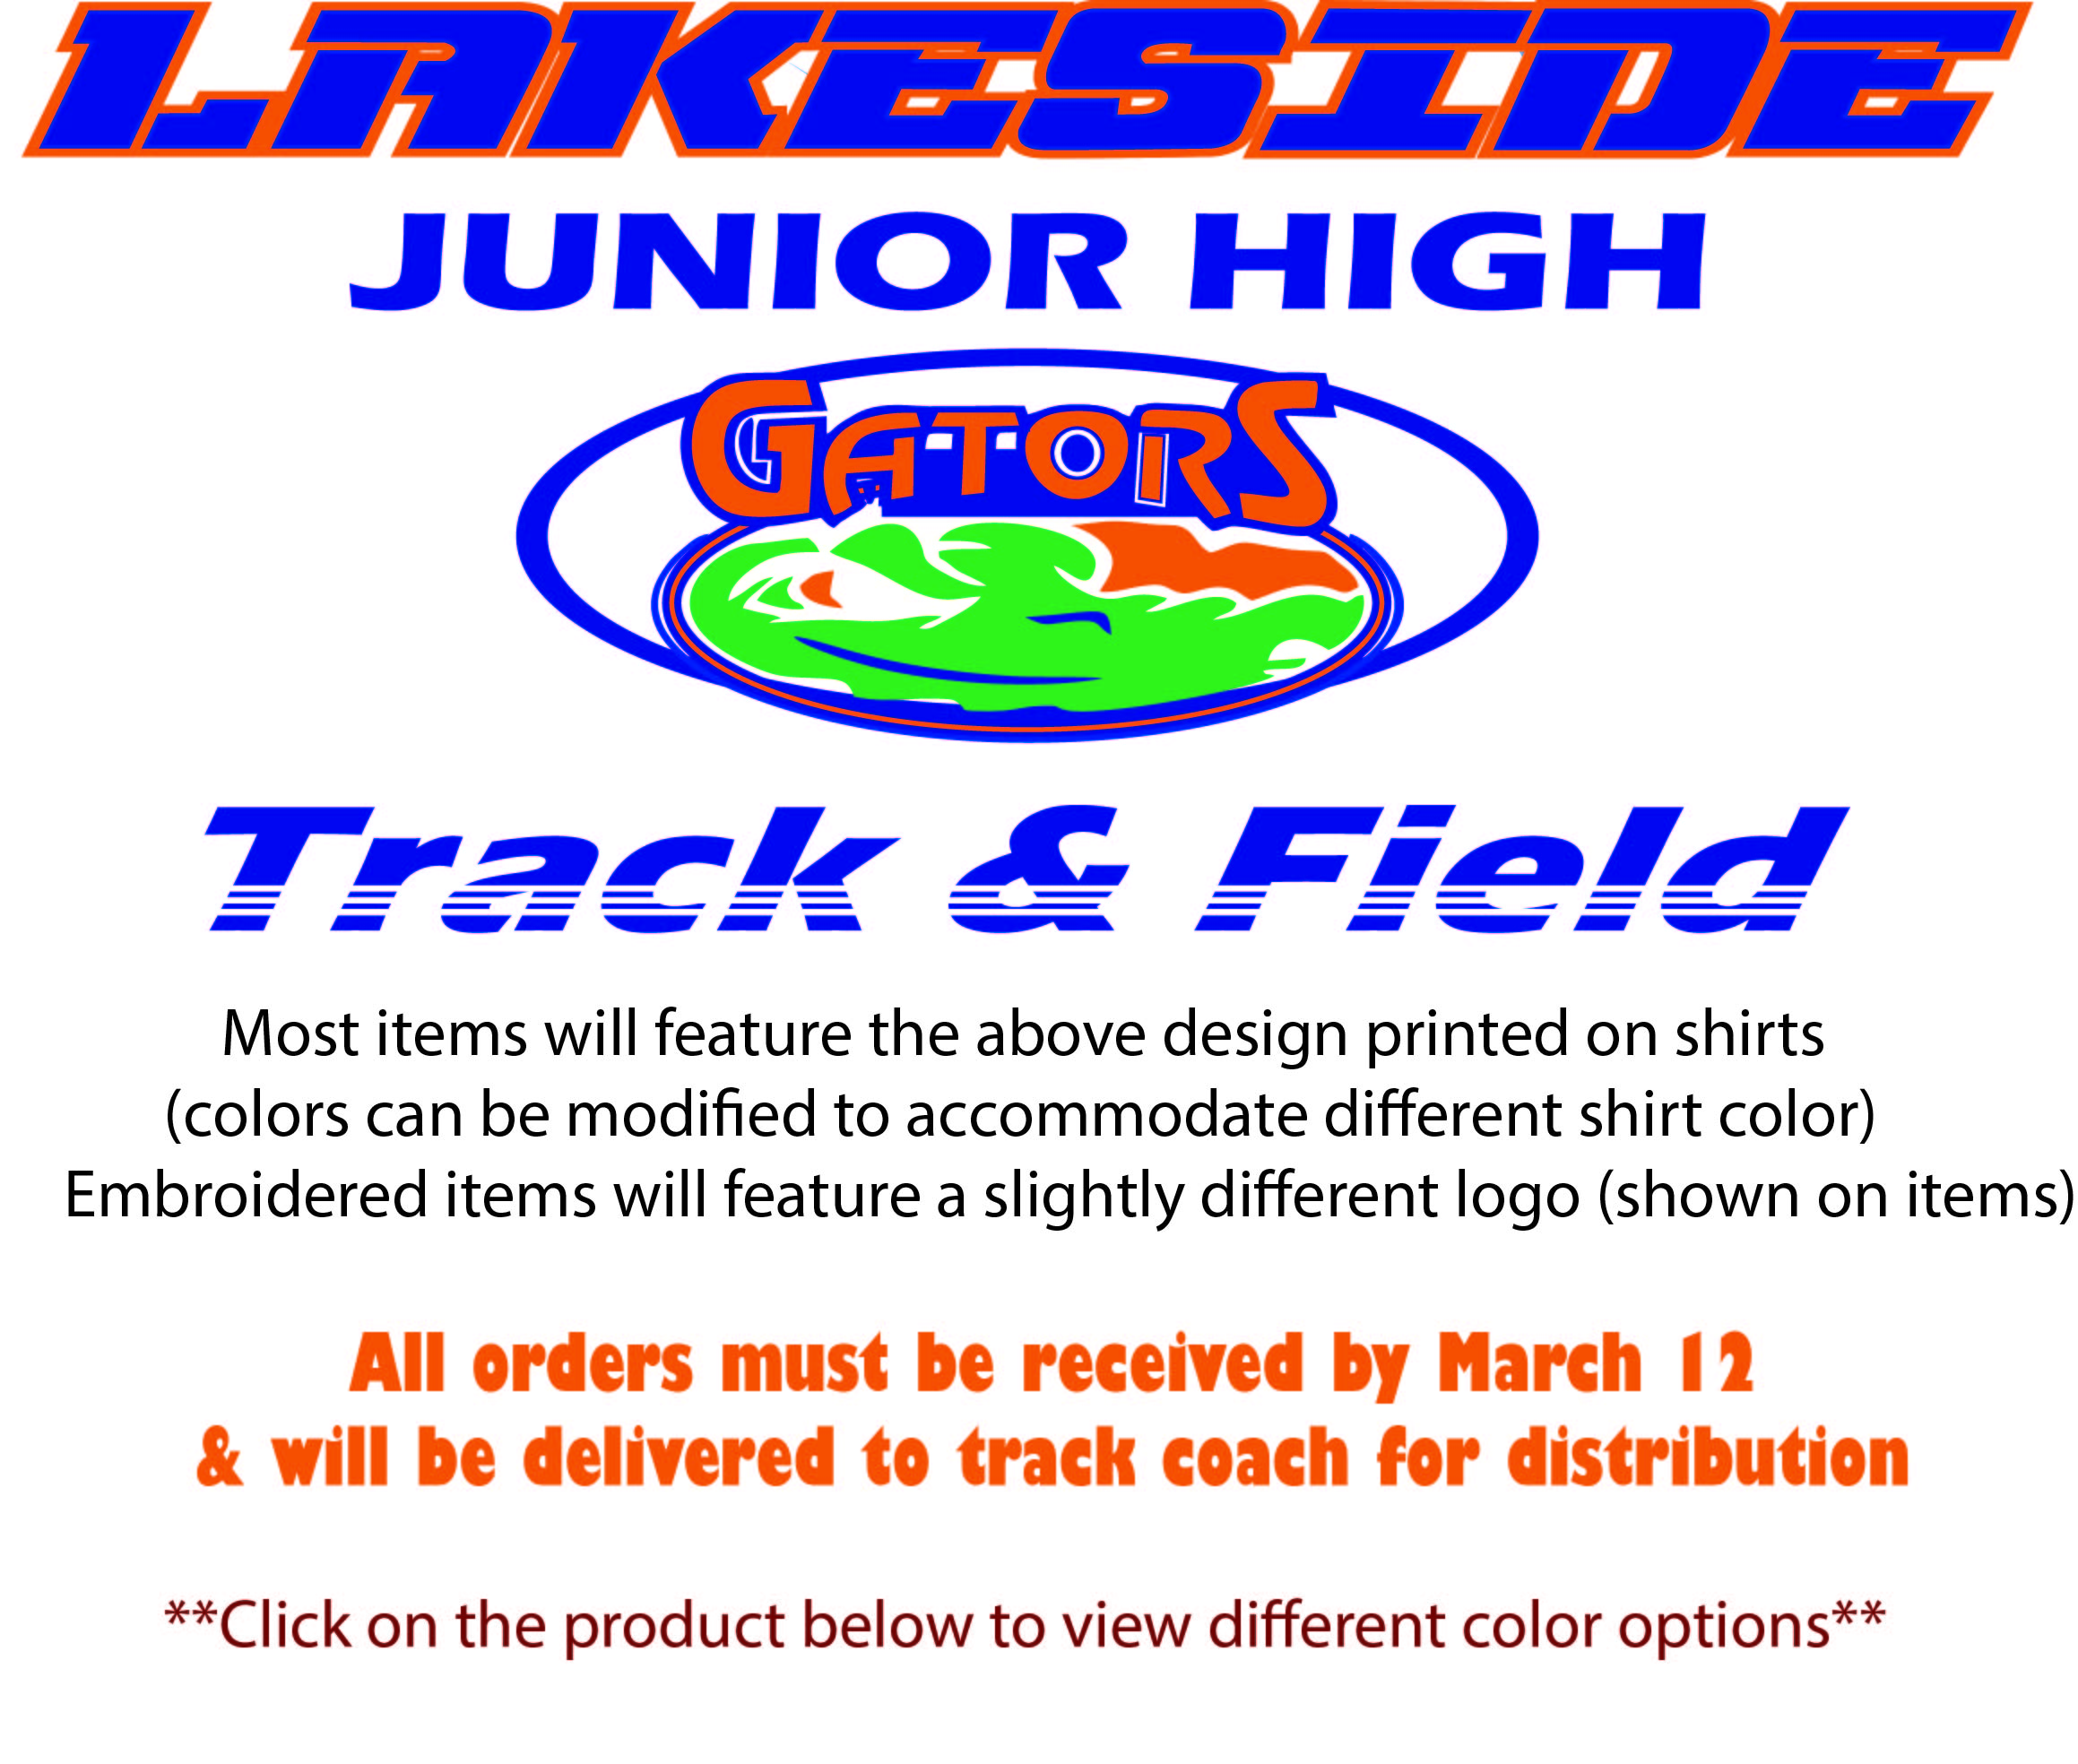 lakeside-track-web-site-header-3.jpg